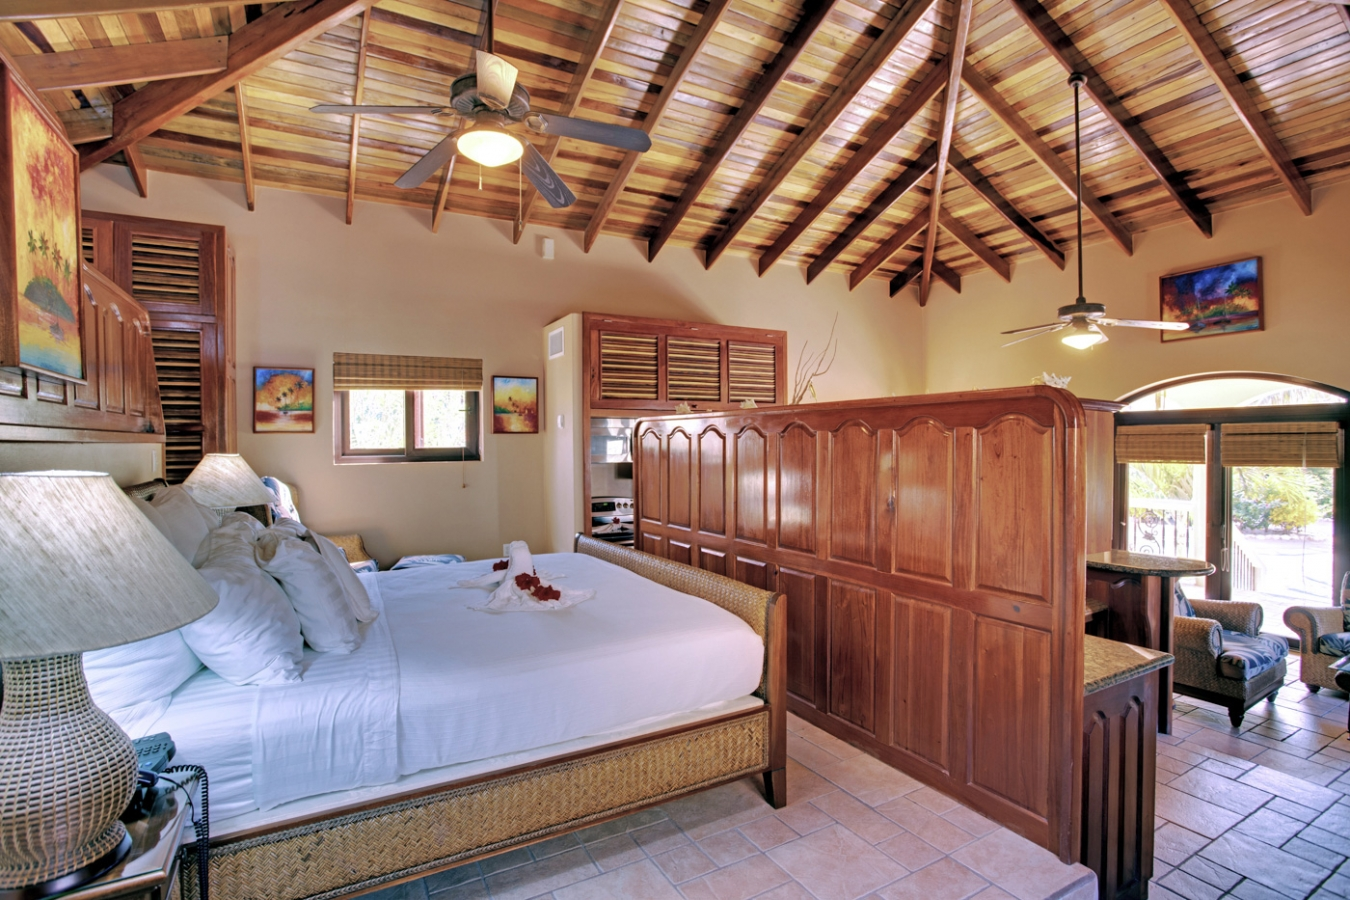 One Bedroom Luxury Honeymoon Casitas O Xtan Ha Resort